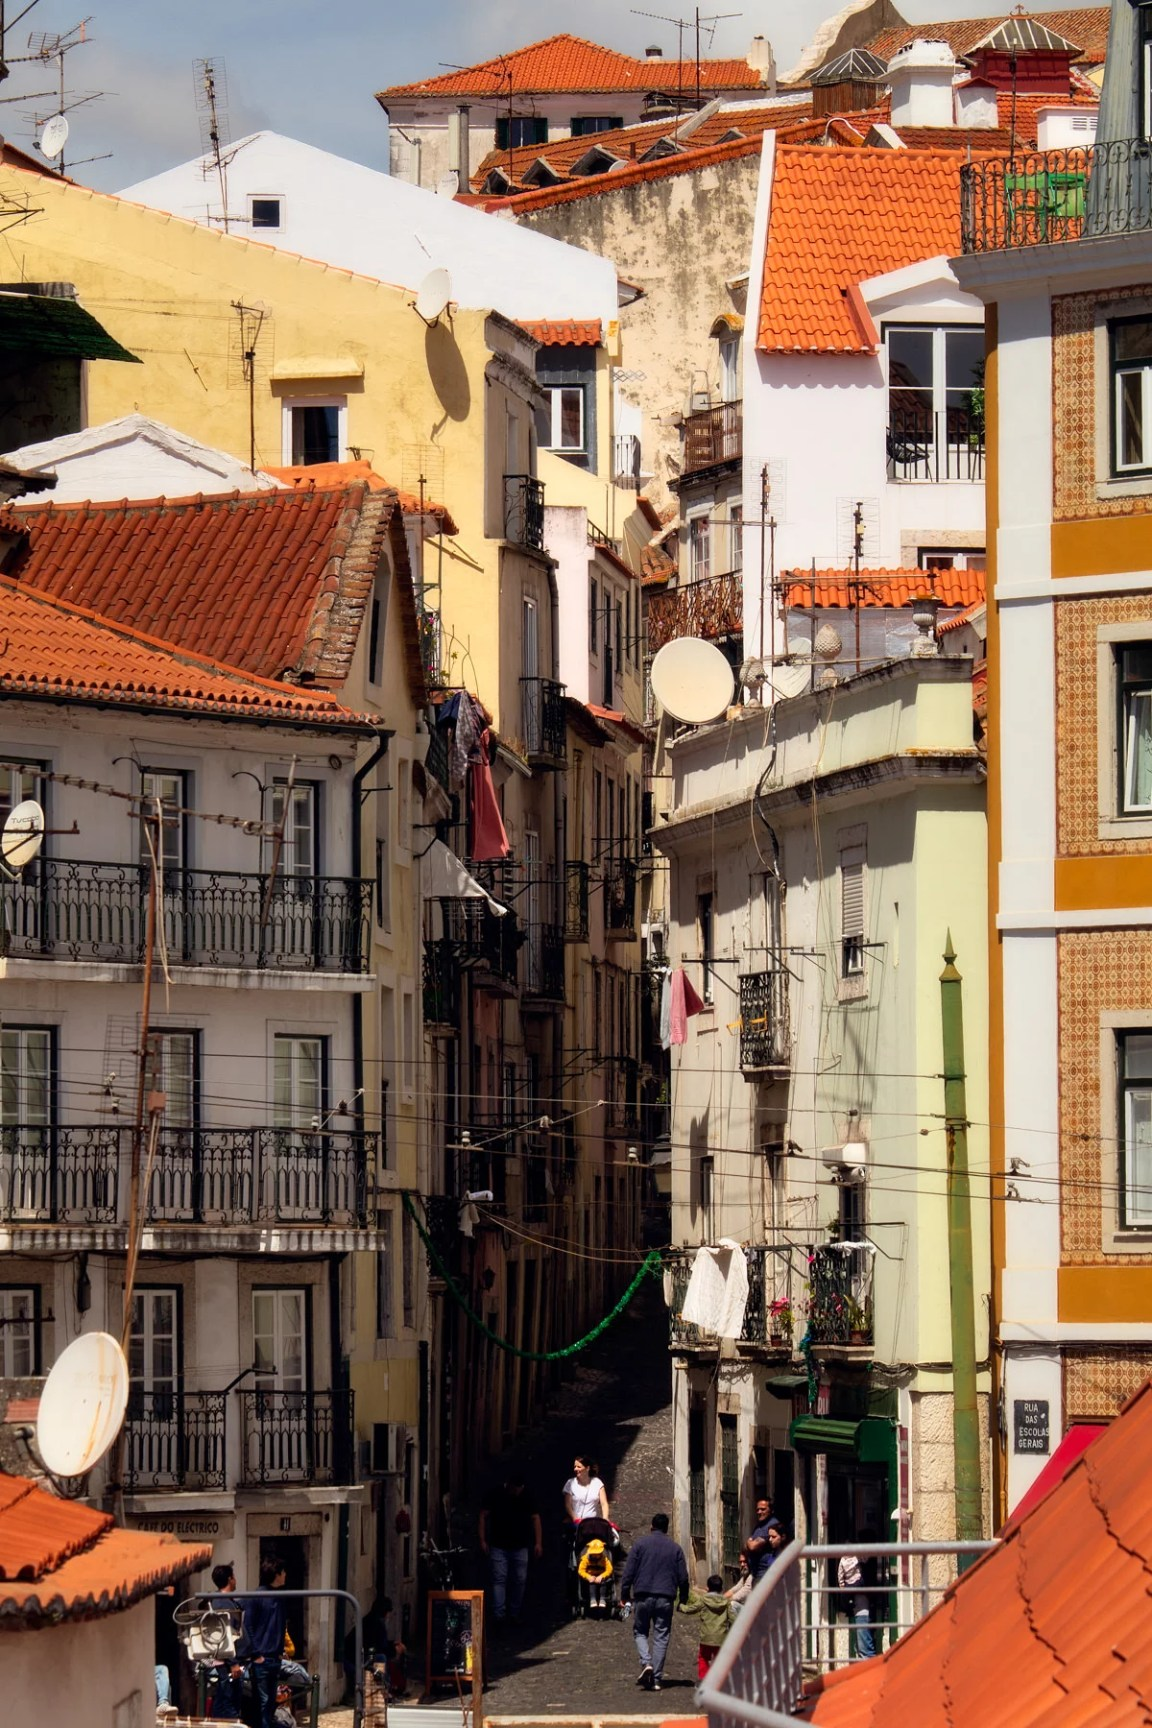 The streets of Lisbon conclude our Lisbon photography guide